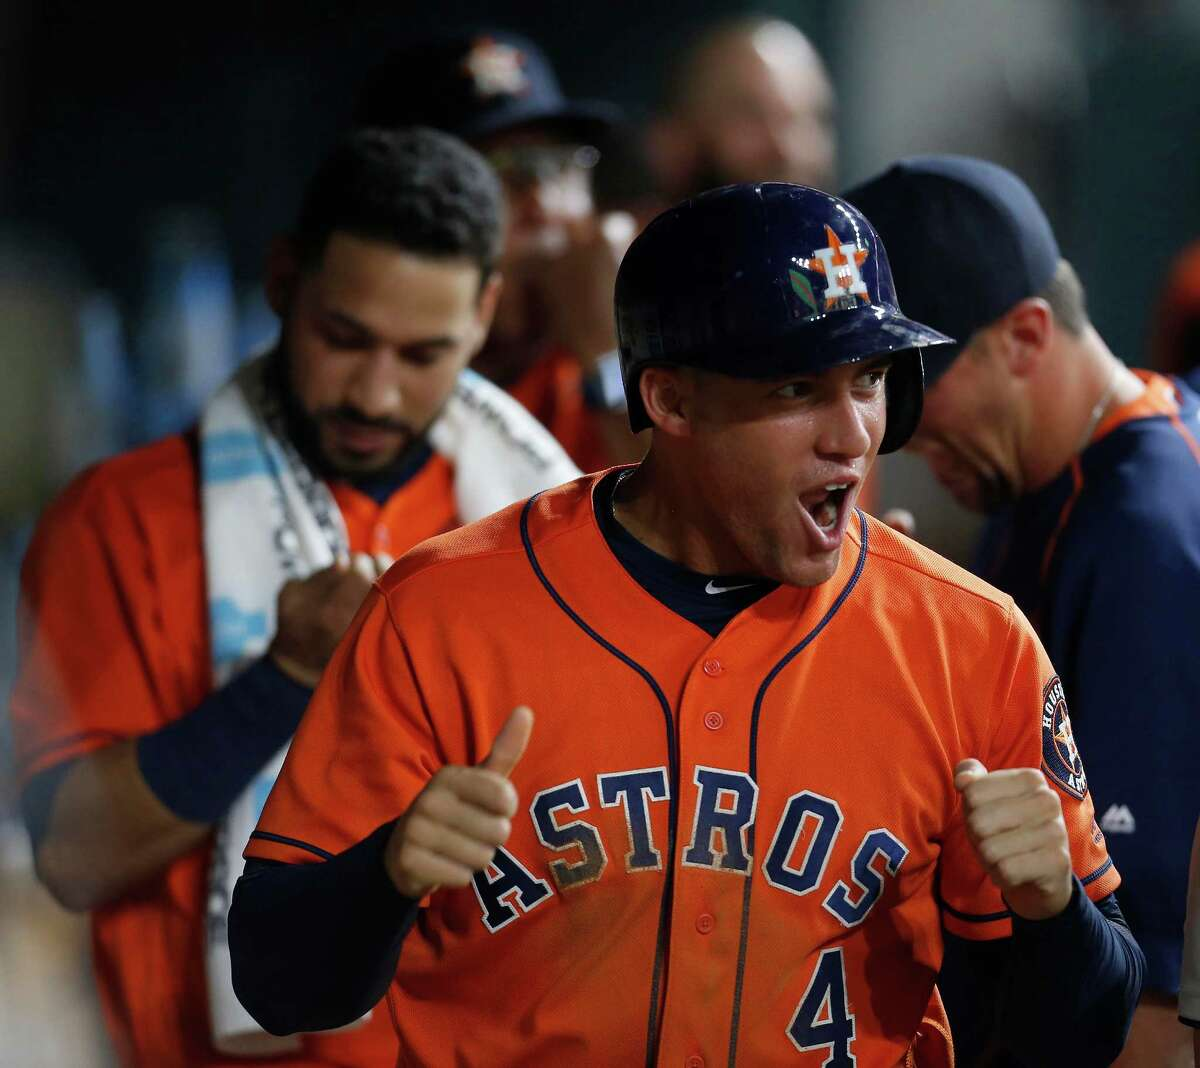 July 1: Astros 5, White Sox 0 Houston Astros right fielder George Springer (4) celebrates his run scored on a single by Carlos Correa during the fourth inning of an MLB baseball game at Minute Maid Park, Friday, July 1, 2016, in Houston.